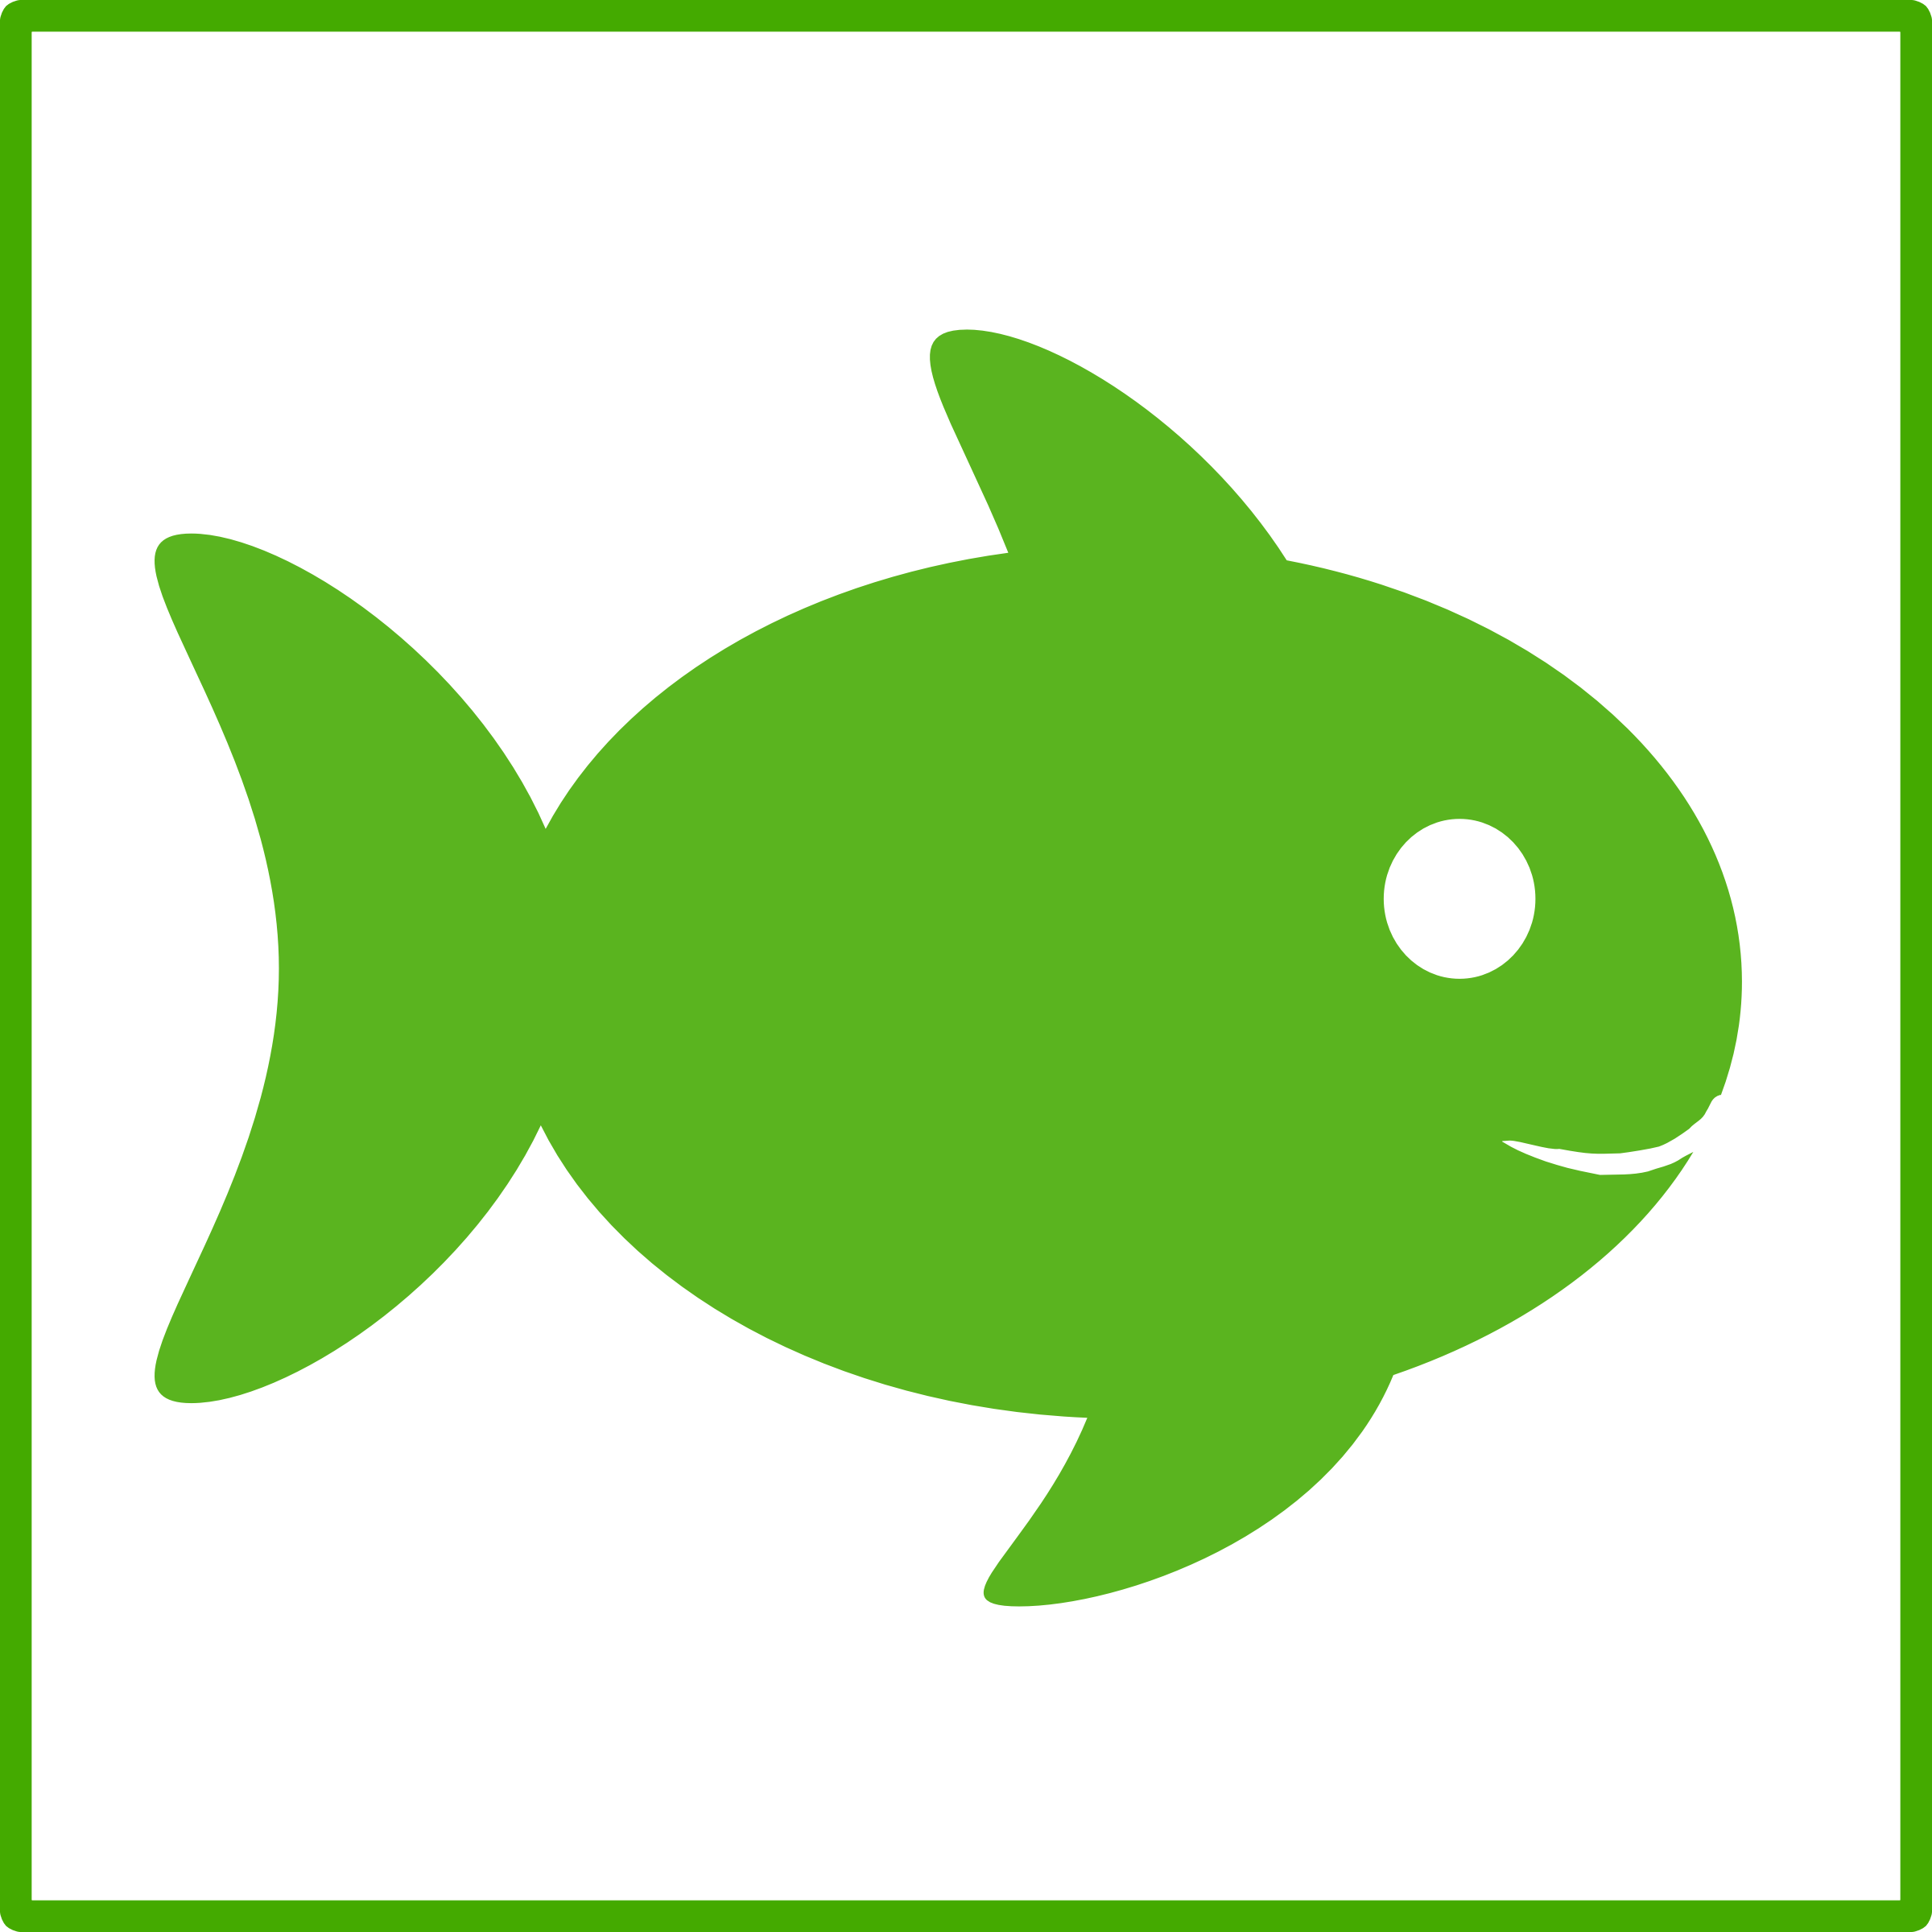 eco green fish icon by dominiquechappard